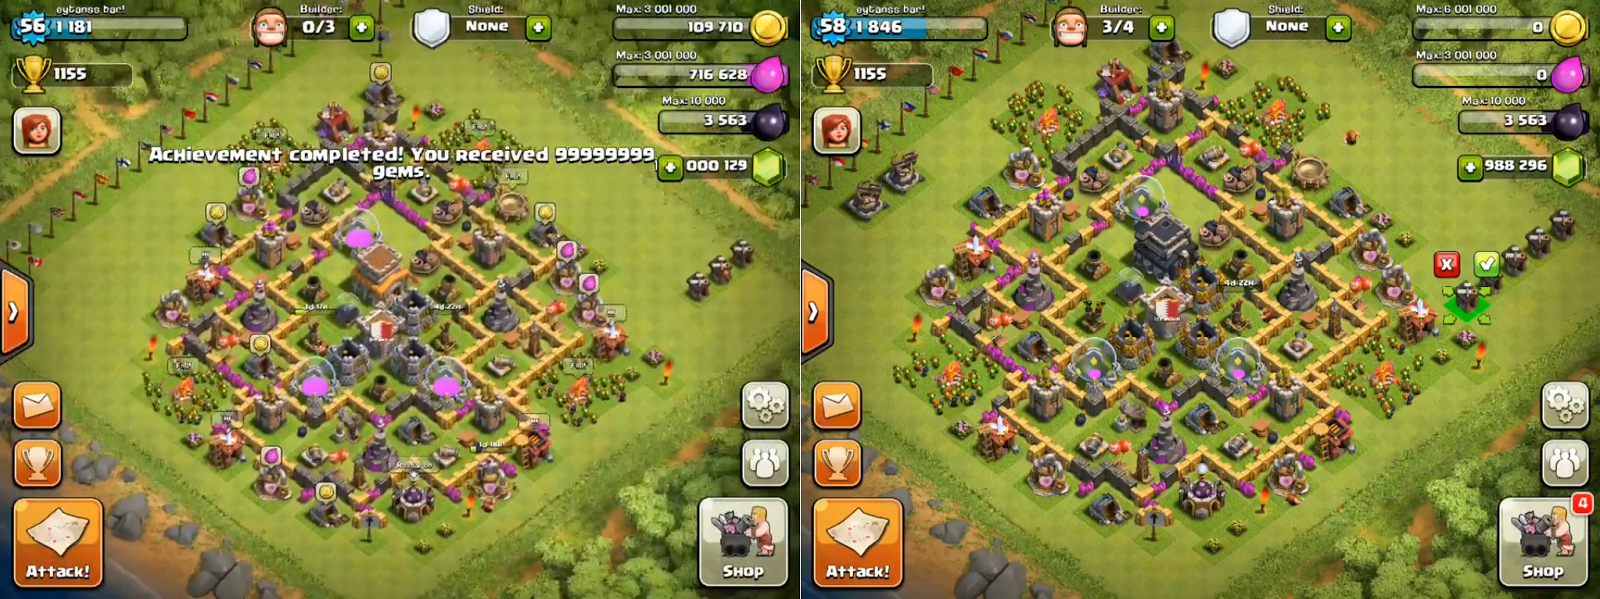 Clash Of Clans Hack, Clash of Clans Gems Hack